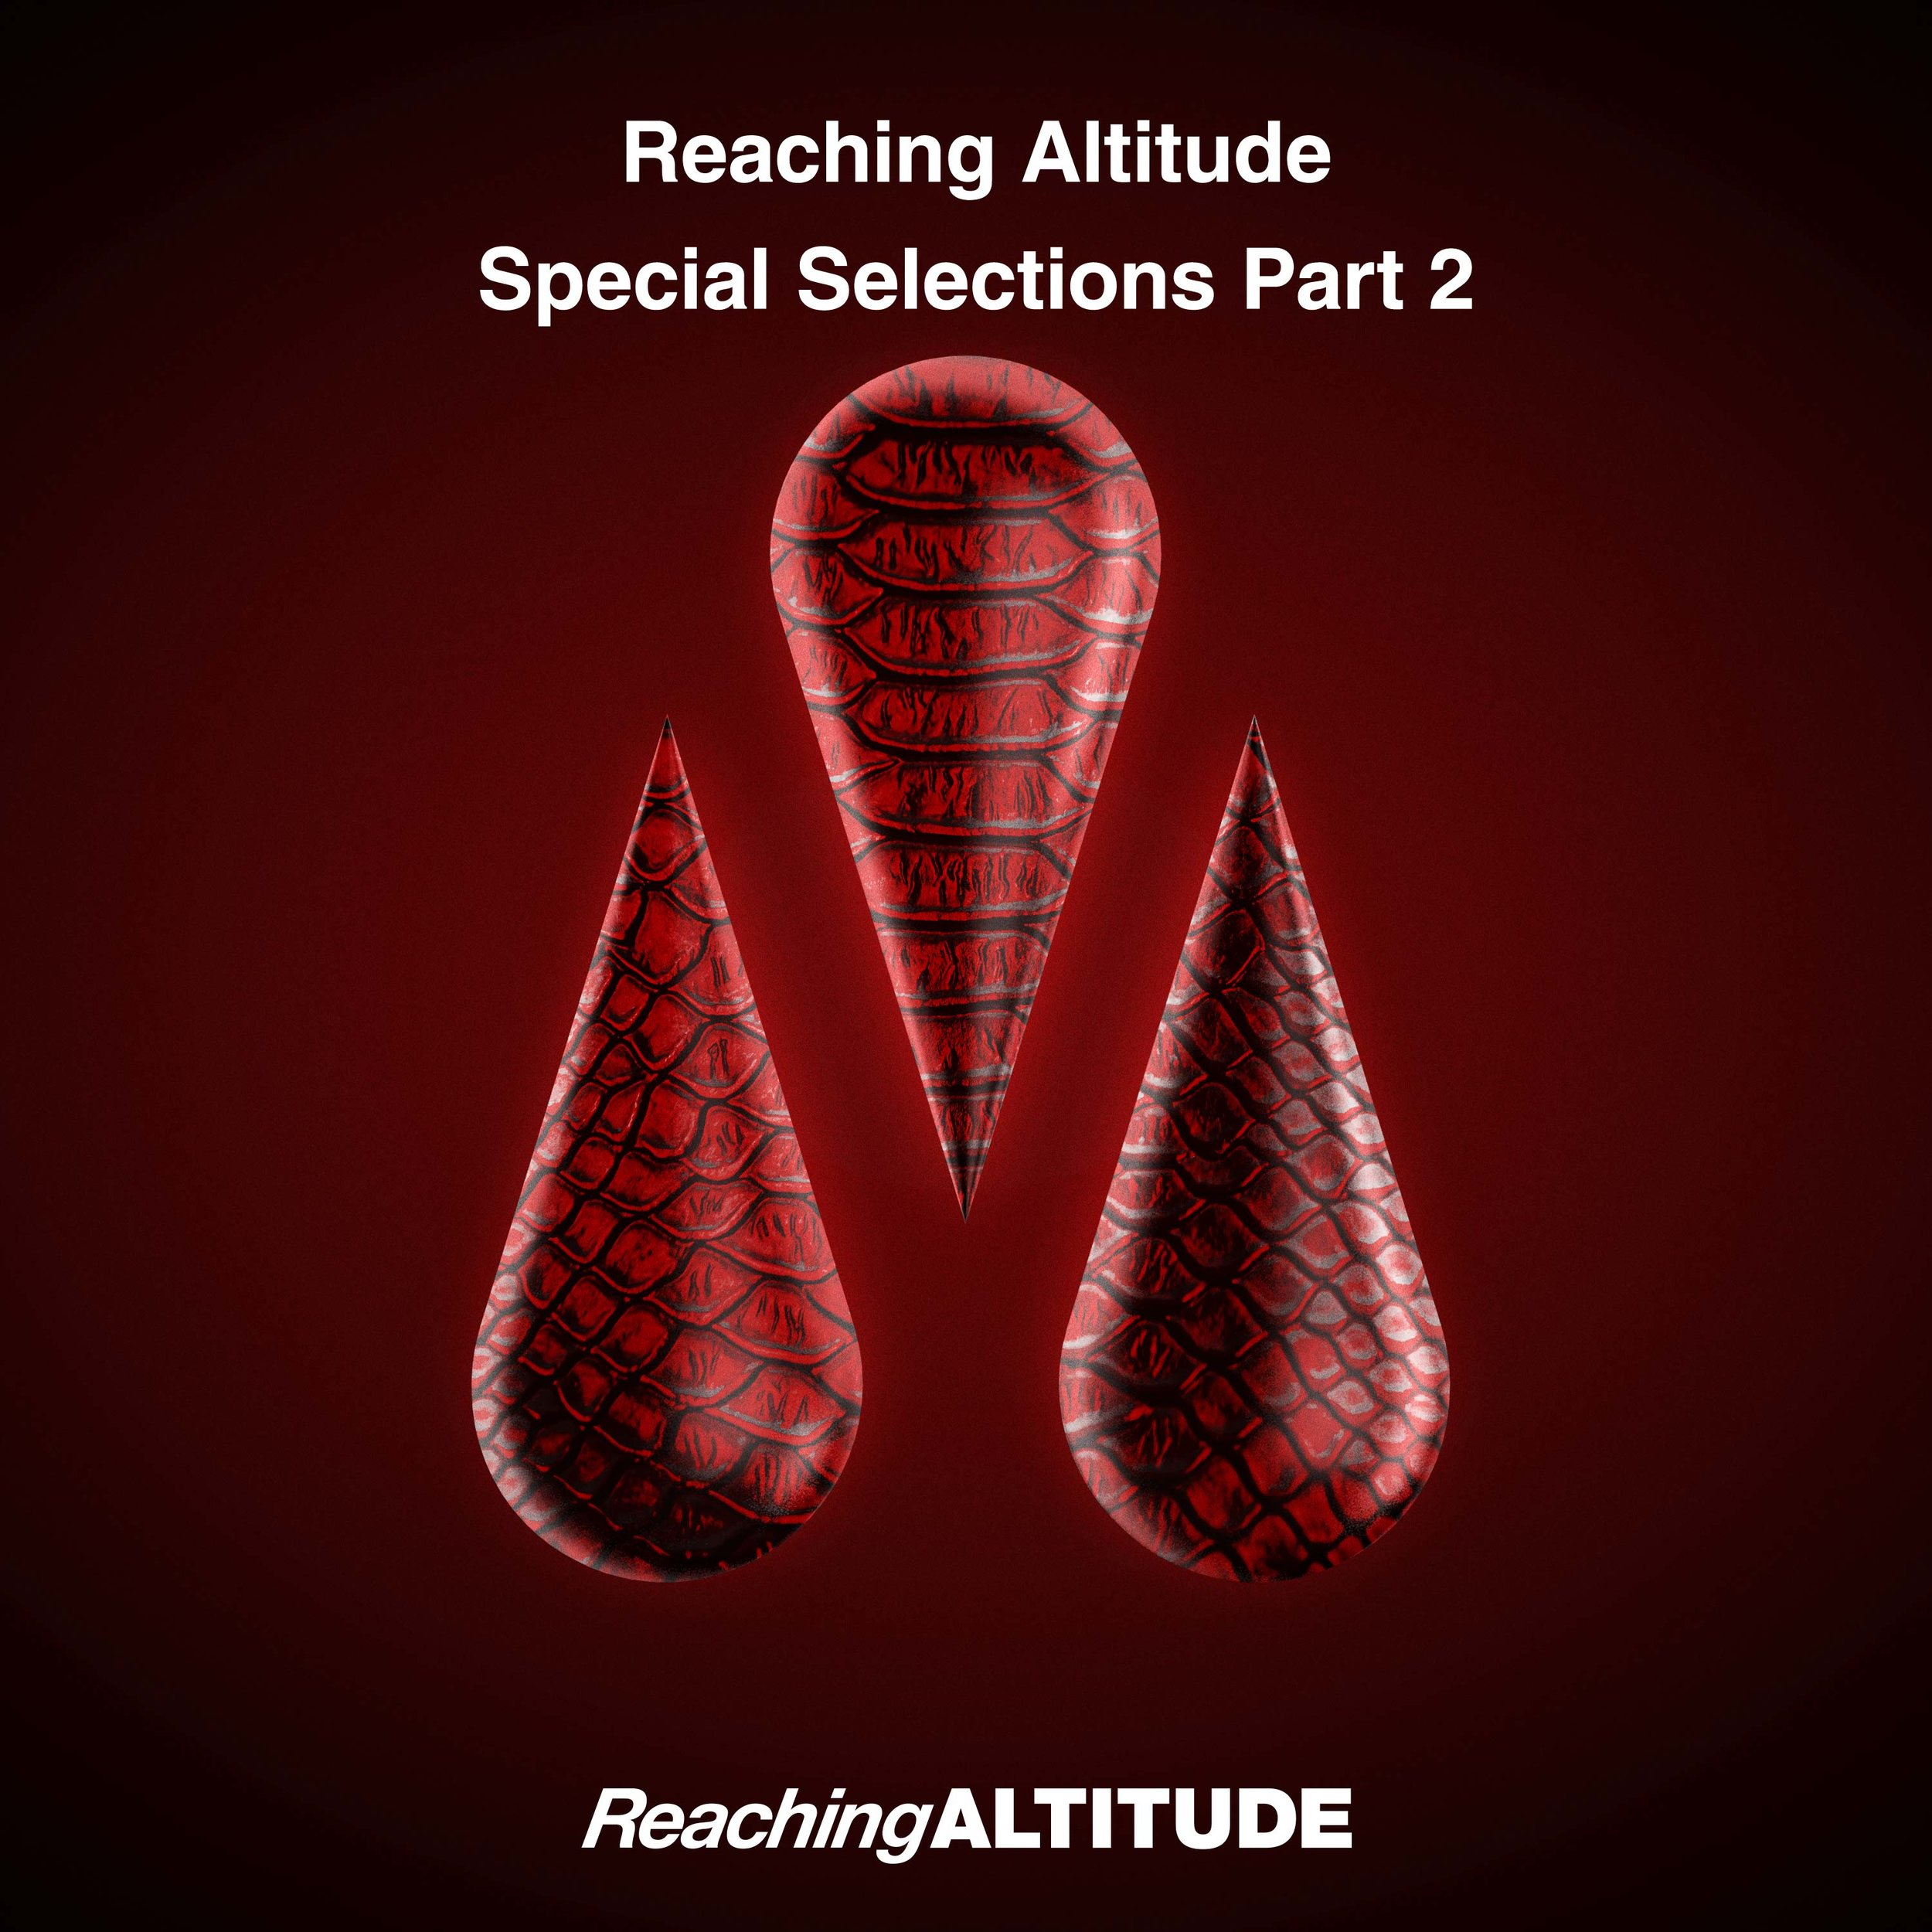 RA071-Various-Artists---Reaching-Altitude-Special-Selections-Part-2.jpg